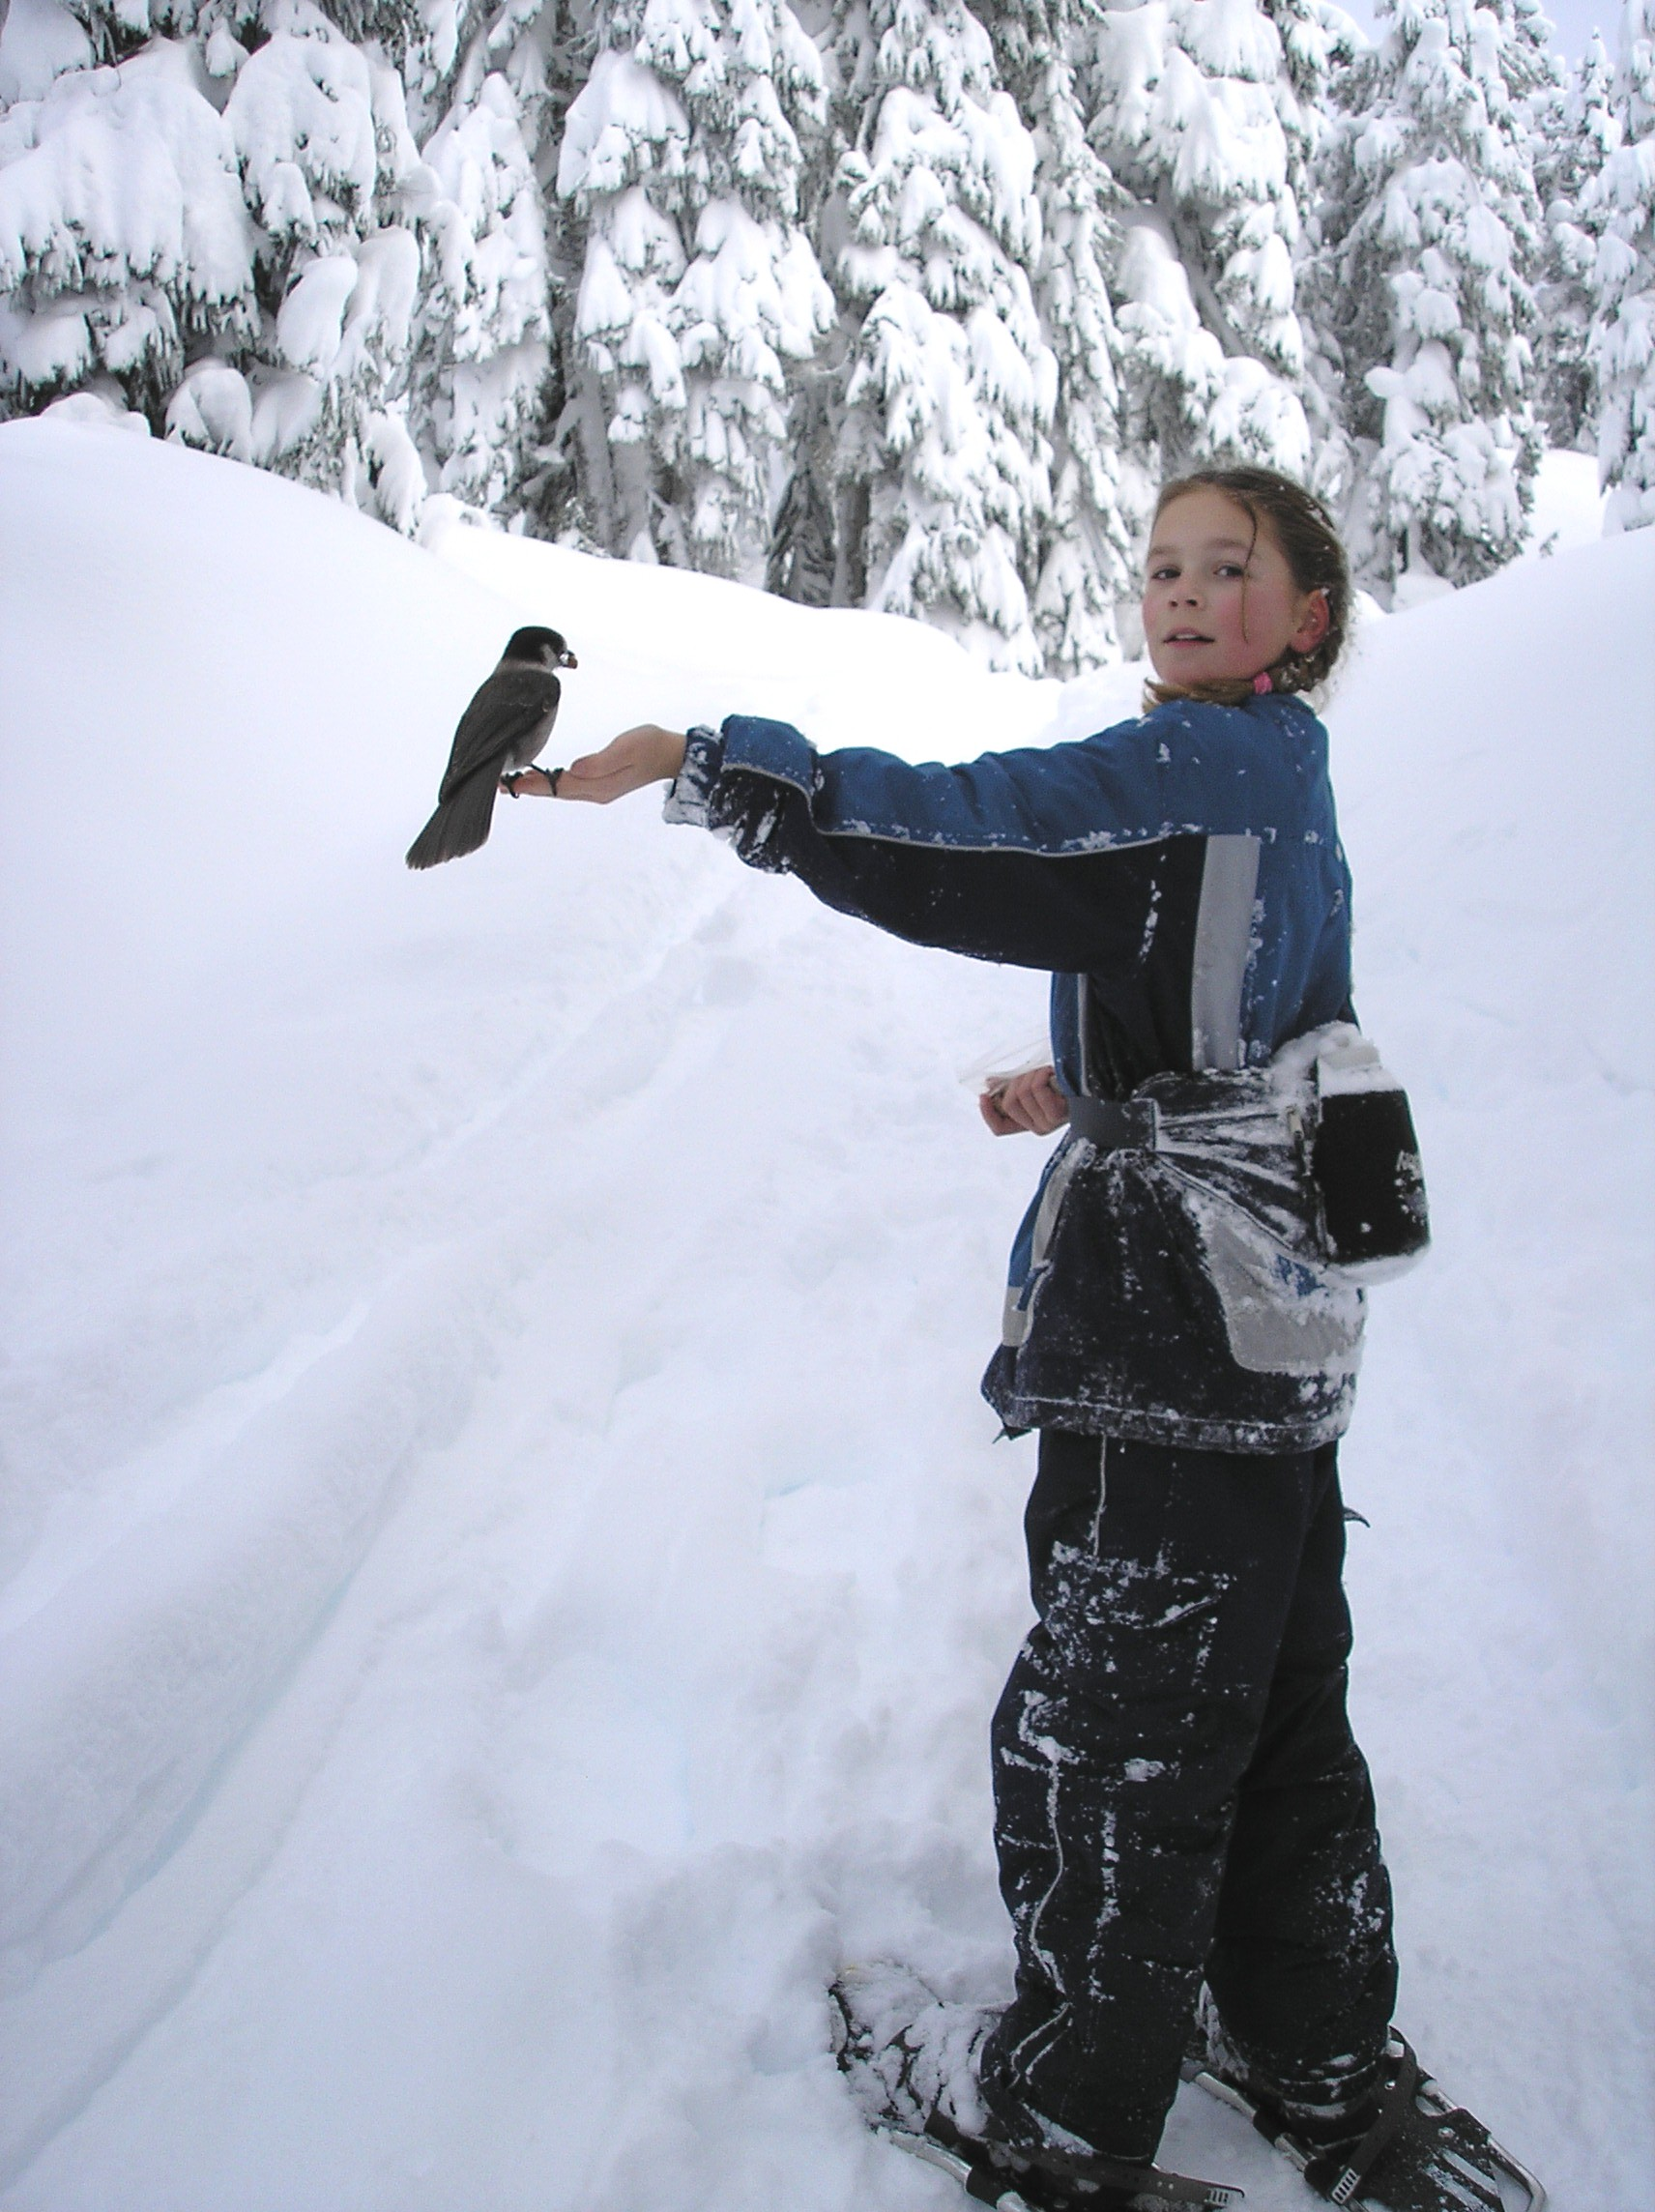 aad93b810a File:Snowshoer with perching bird.jpg - Wikimedia Commons